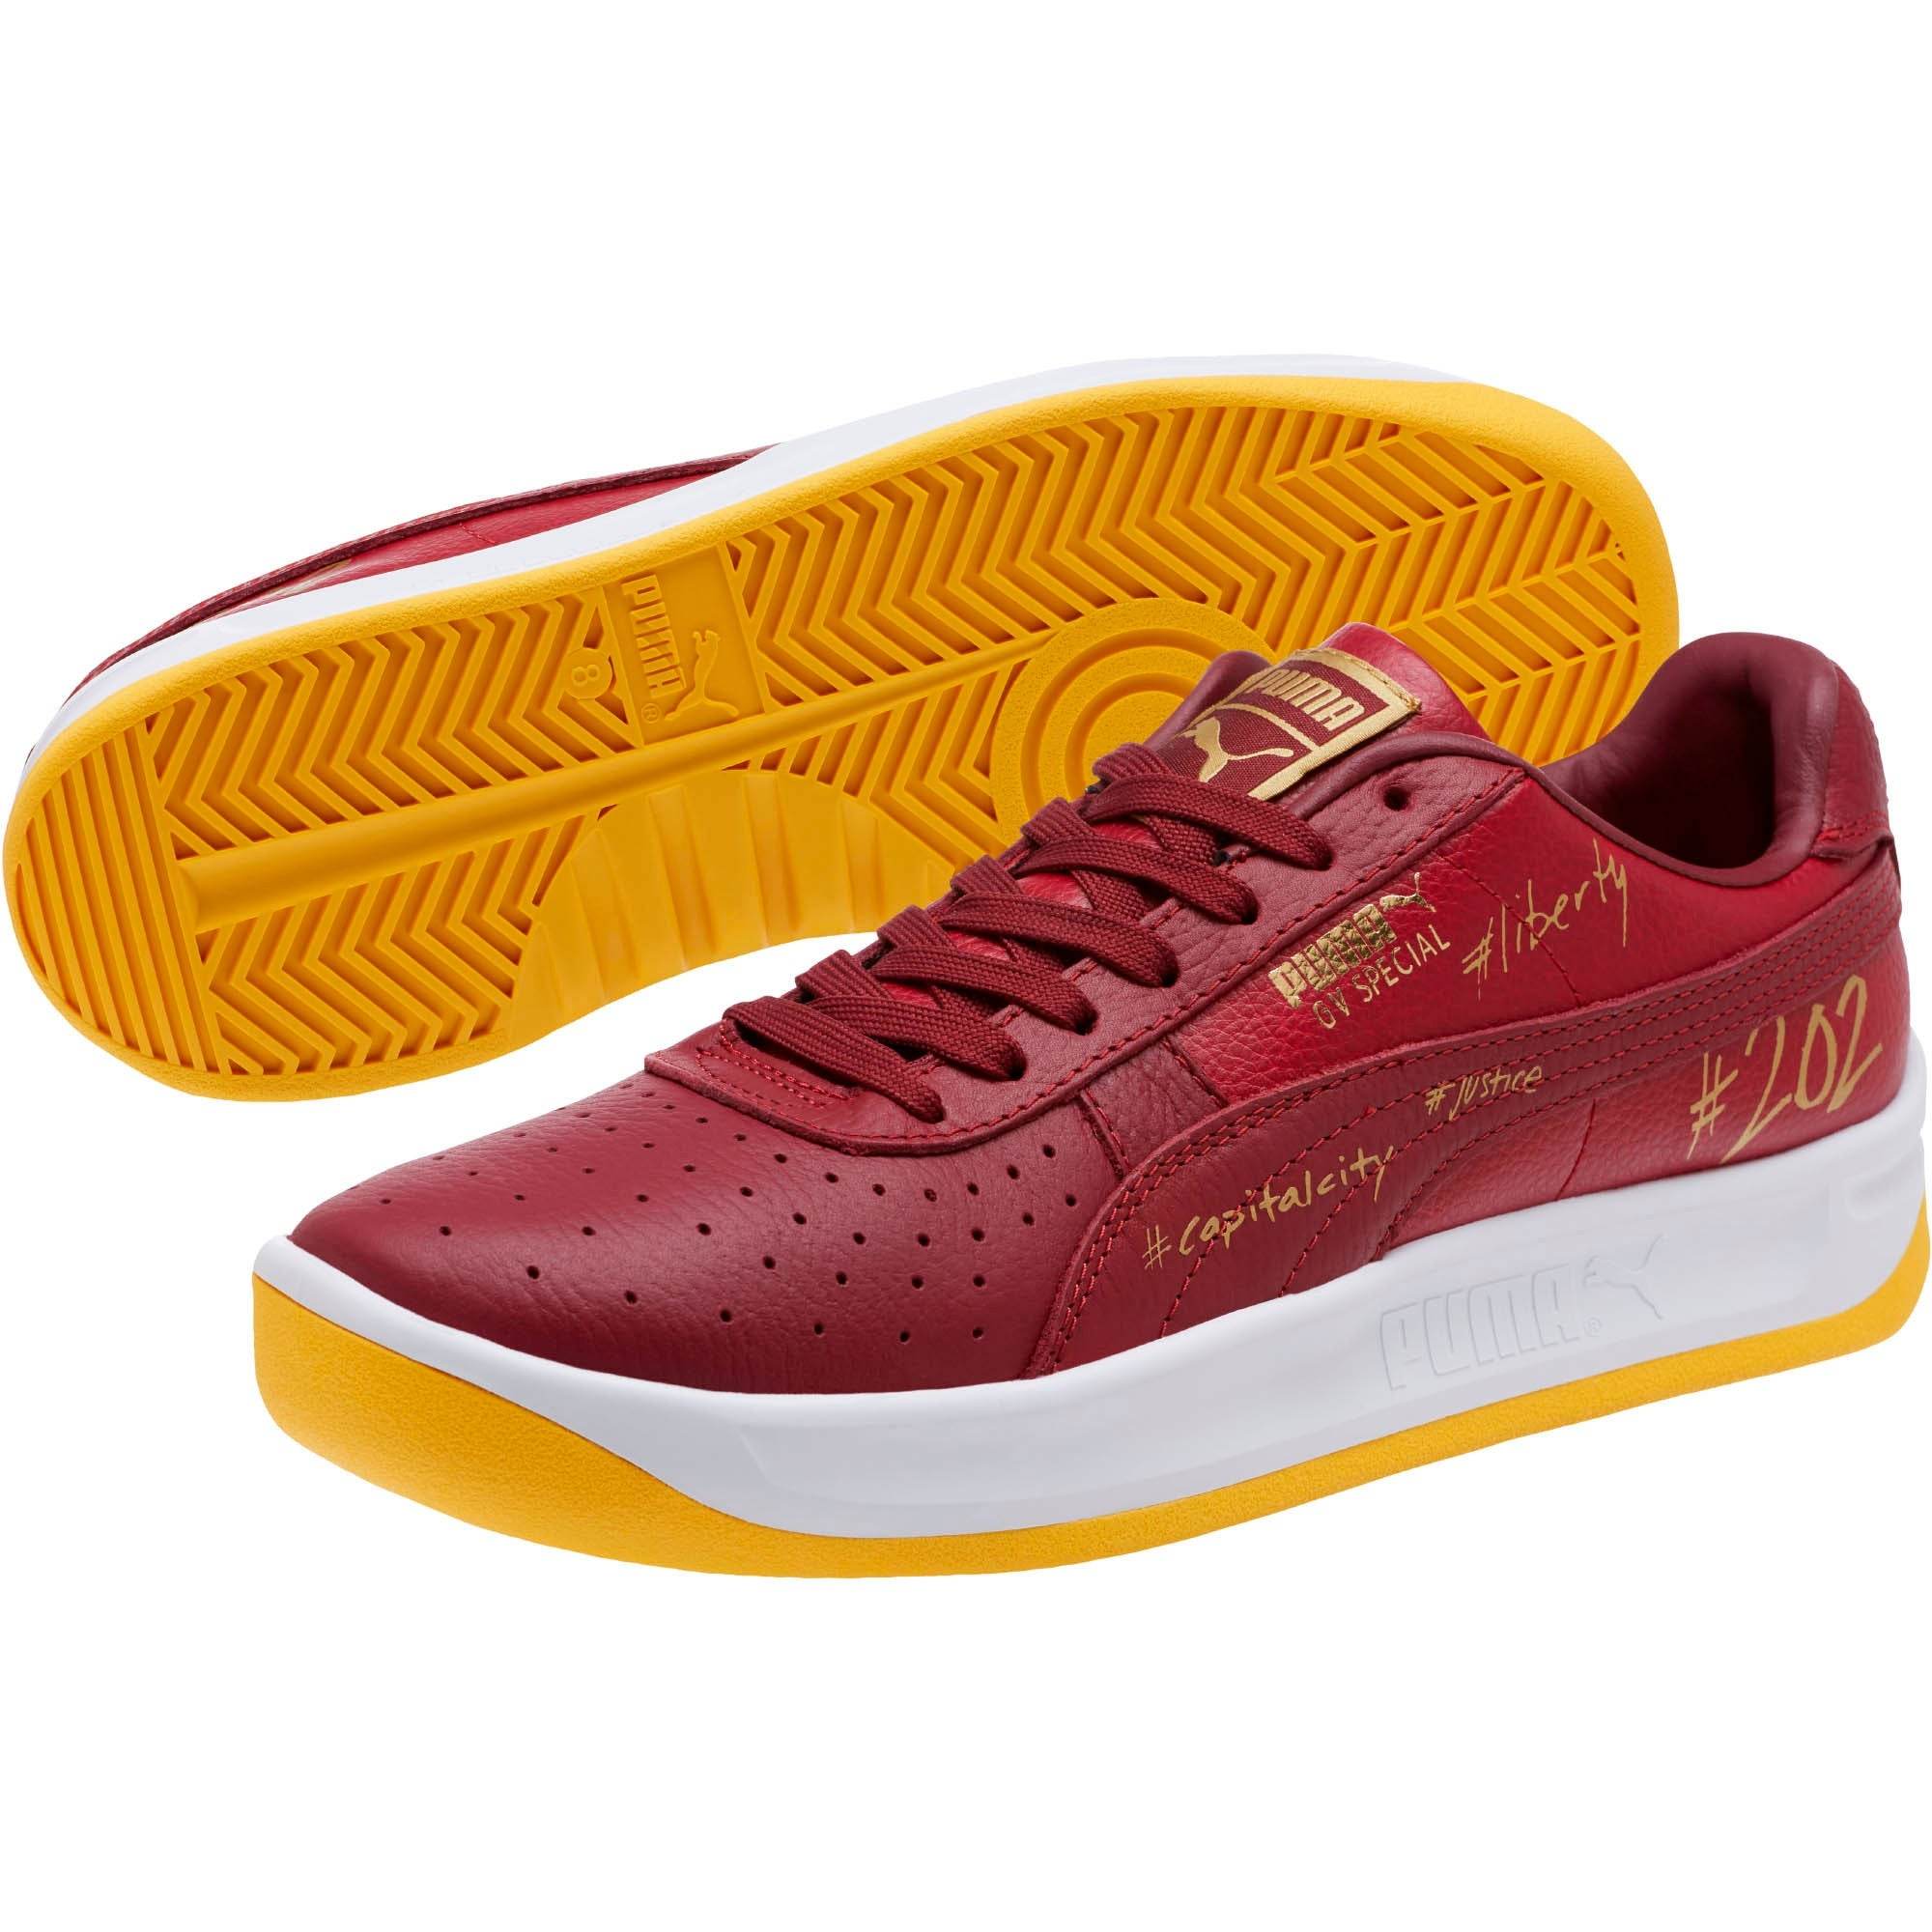 Puma Mens gv special wdc Leather Low Top Lace Up Fashion Sneakers 10.5